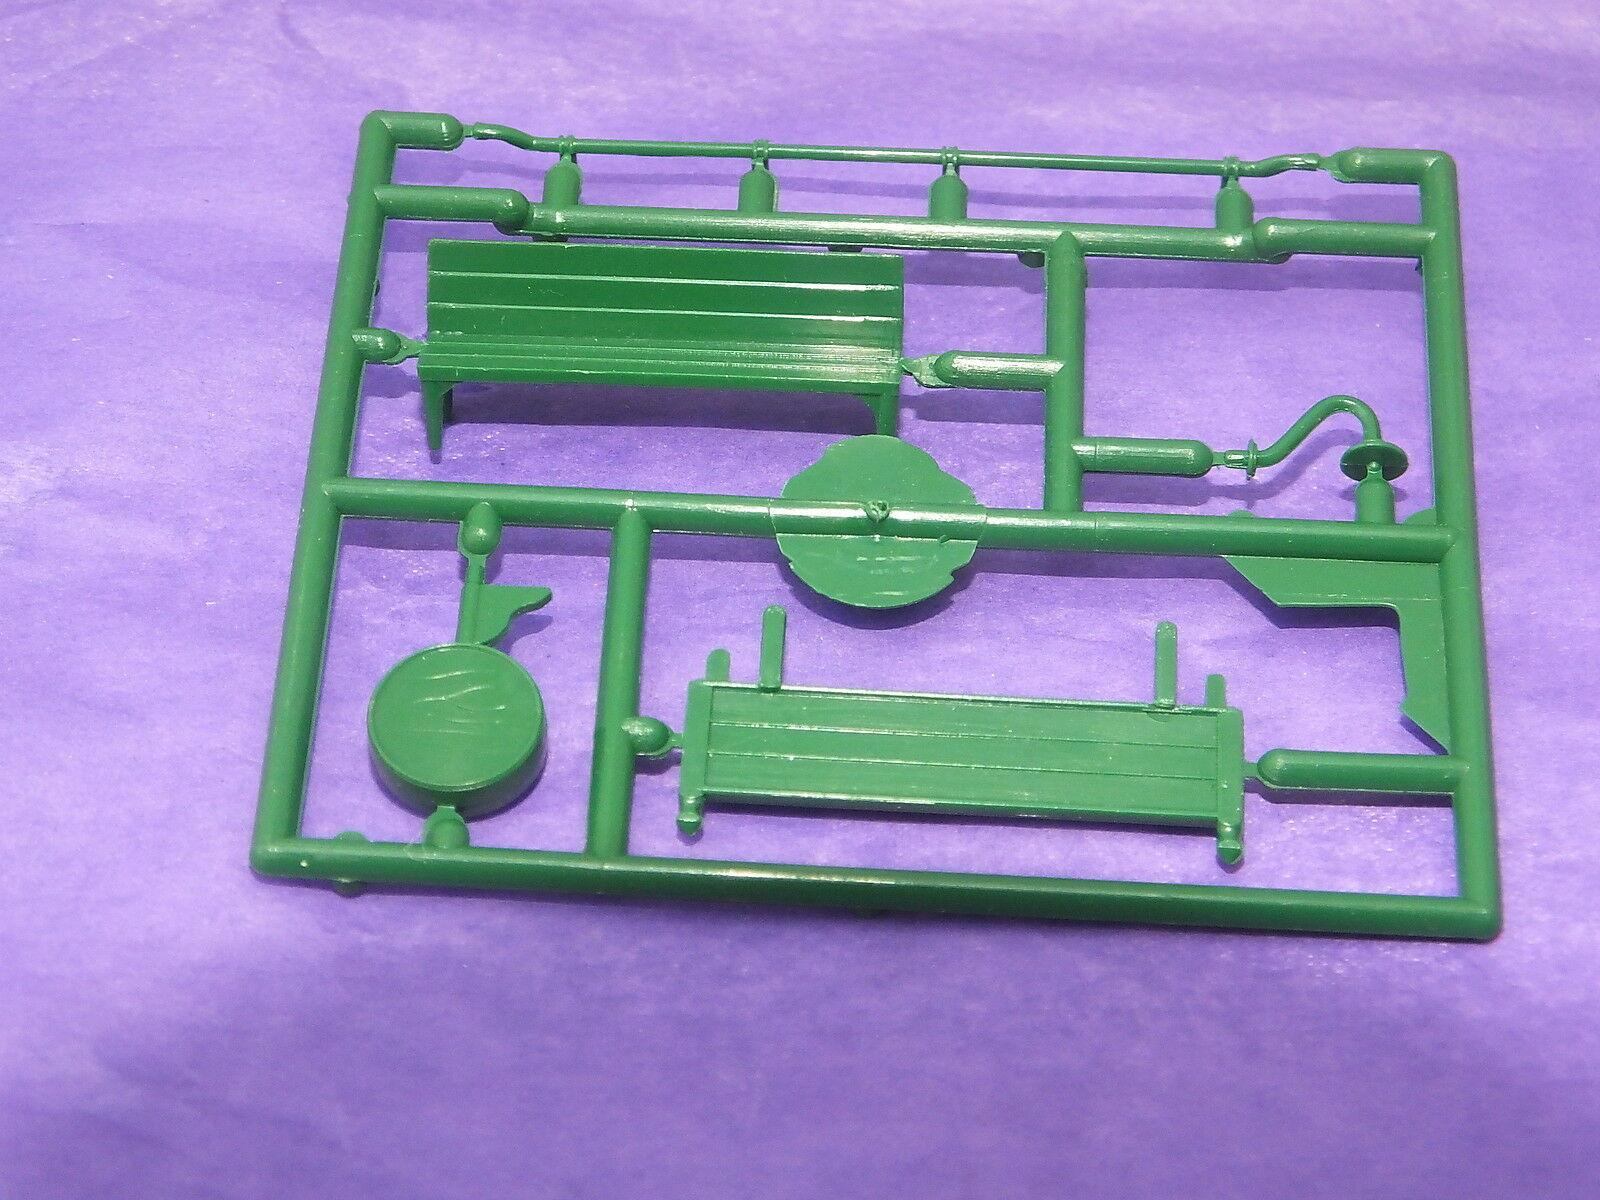 S9862 # HORNBY TRIANG STATION FITTINGS FRET SEAT/CLOCK/LIGHT/N/BOARD GREEN  P21A